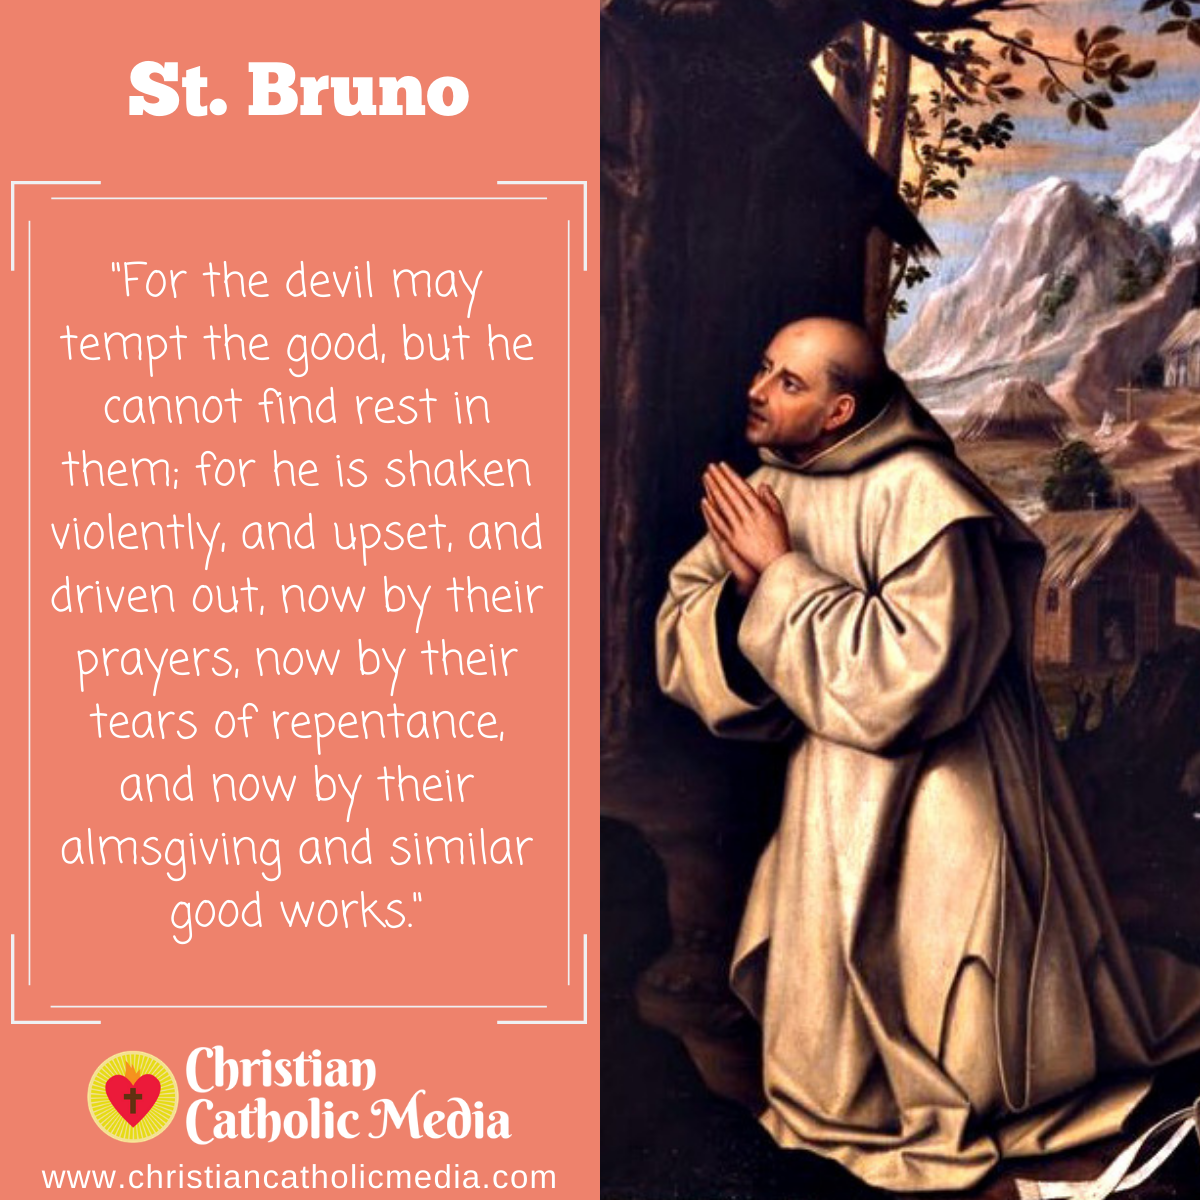 St. Bruno - Tuesday October 6, 2020